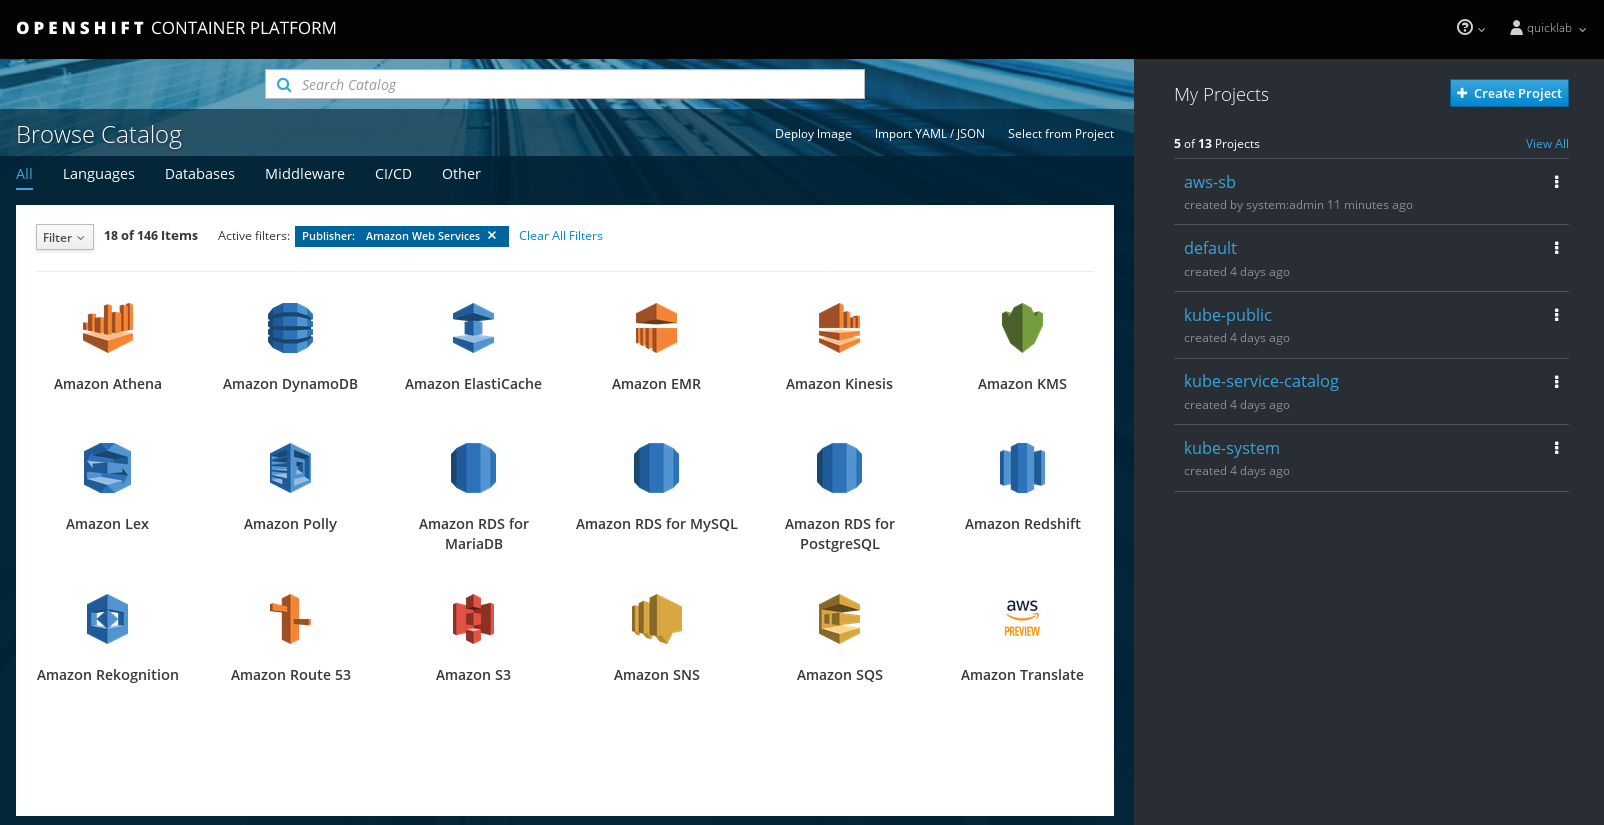 AWS services in the service catalog